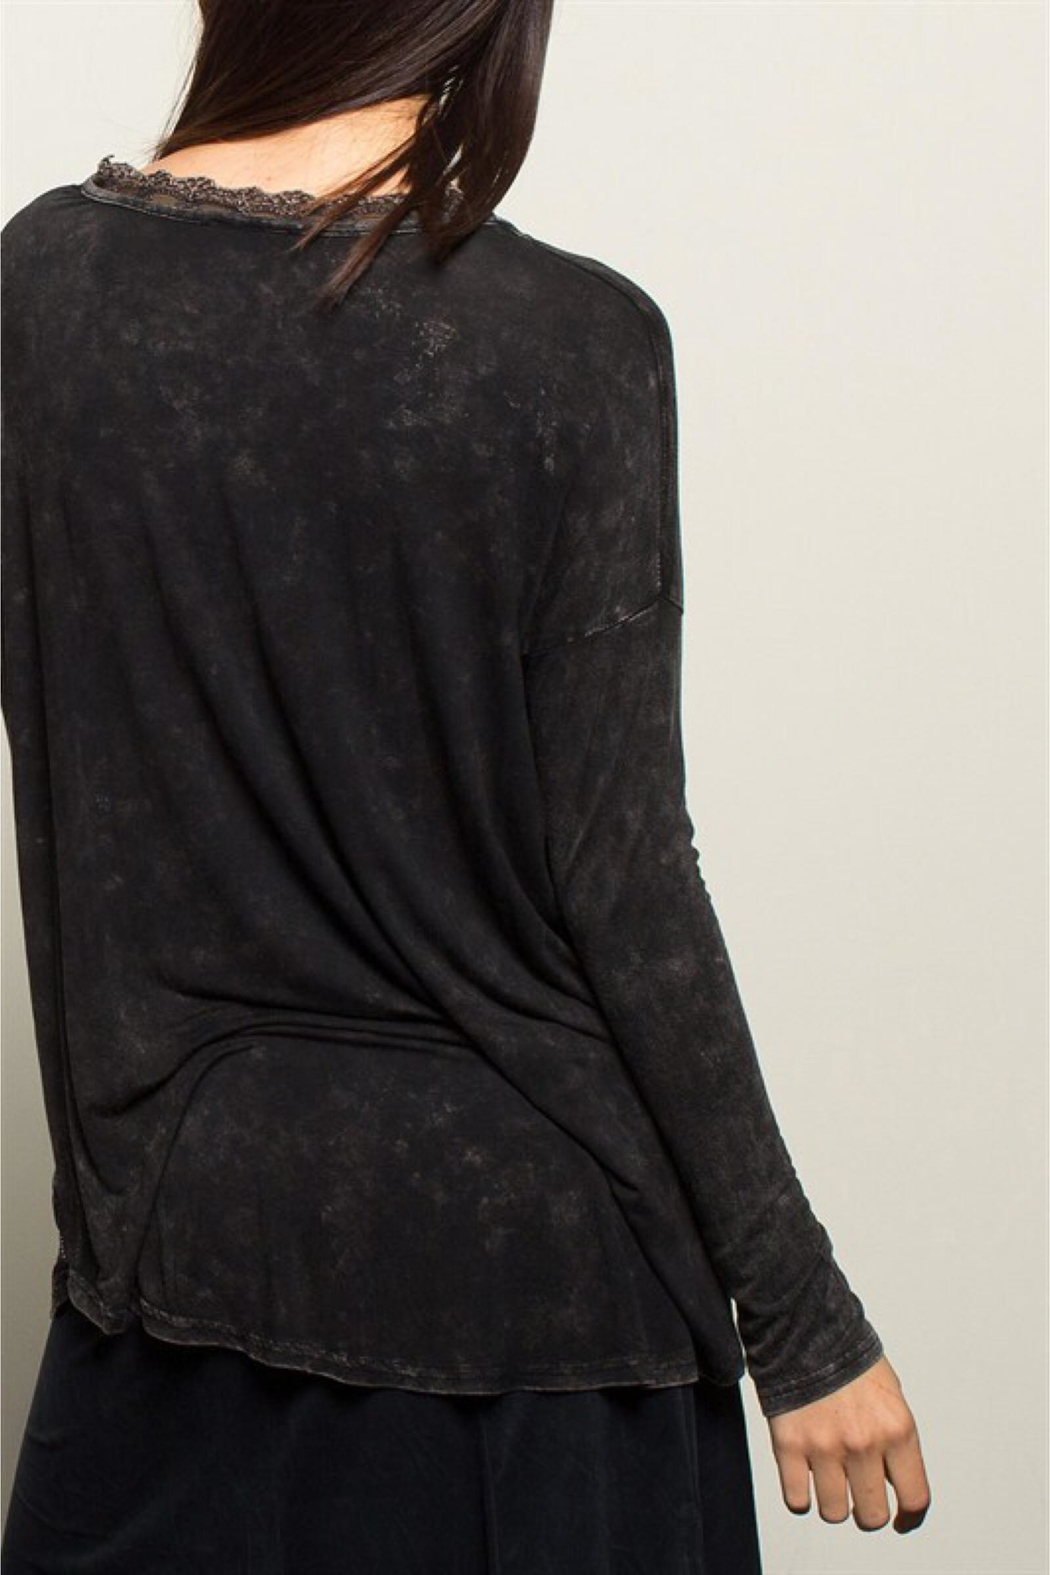 People Outfitter Black Stonewashed Tunic Top - Back Cropped Image